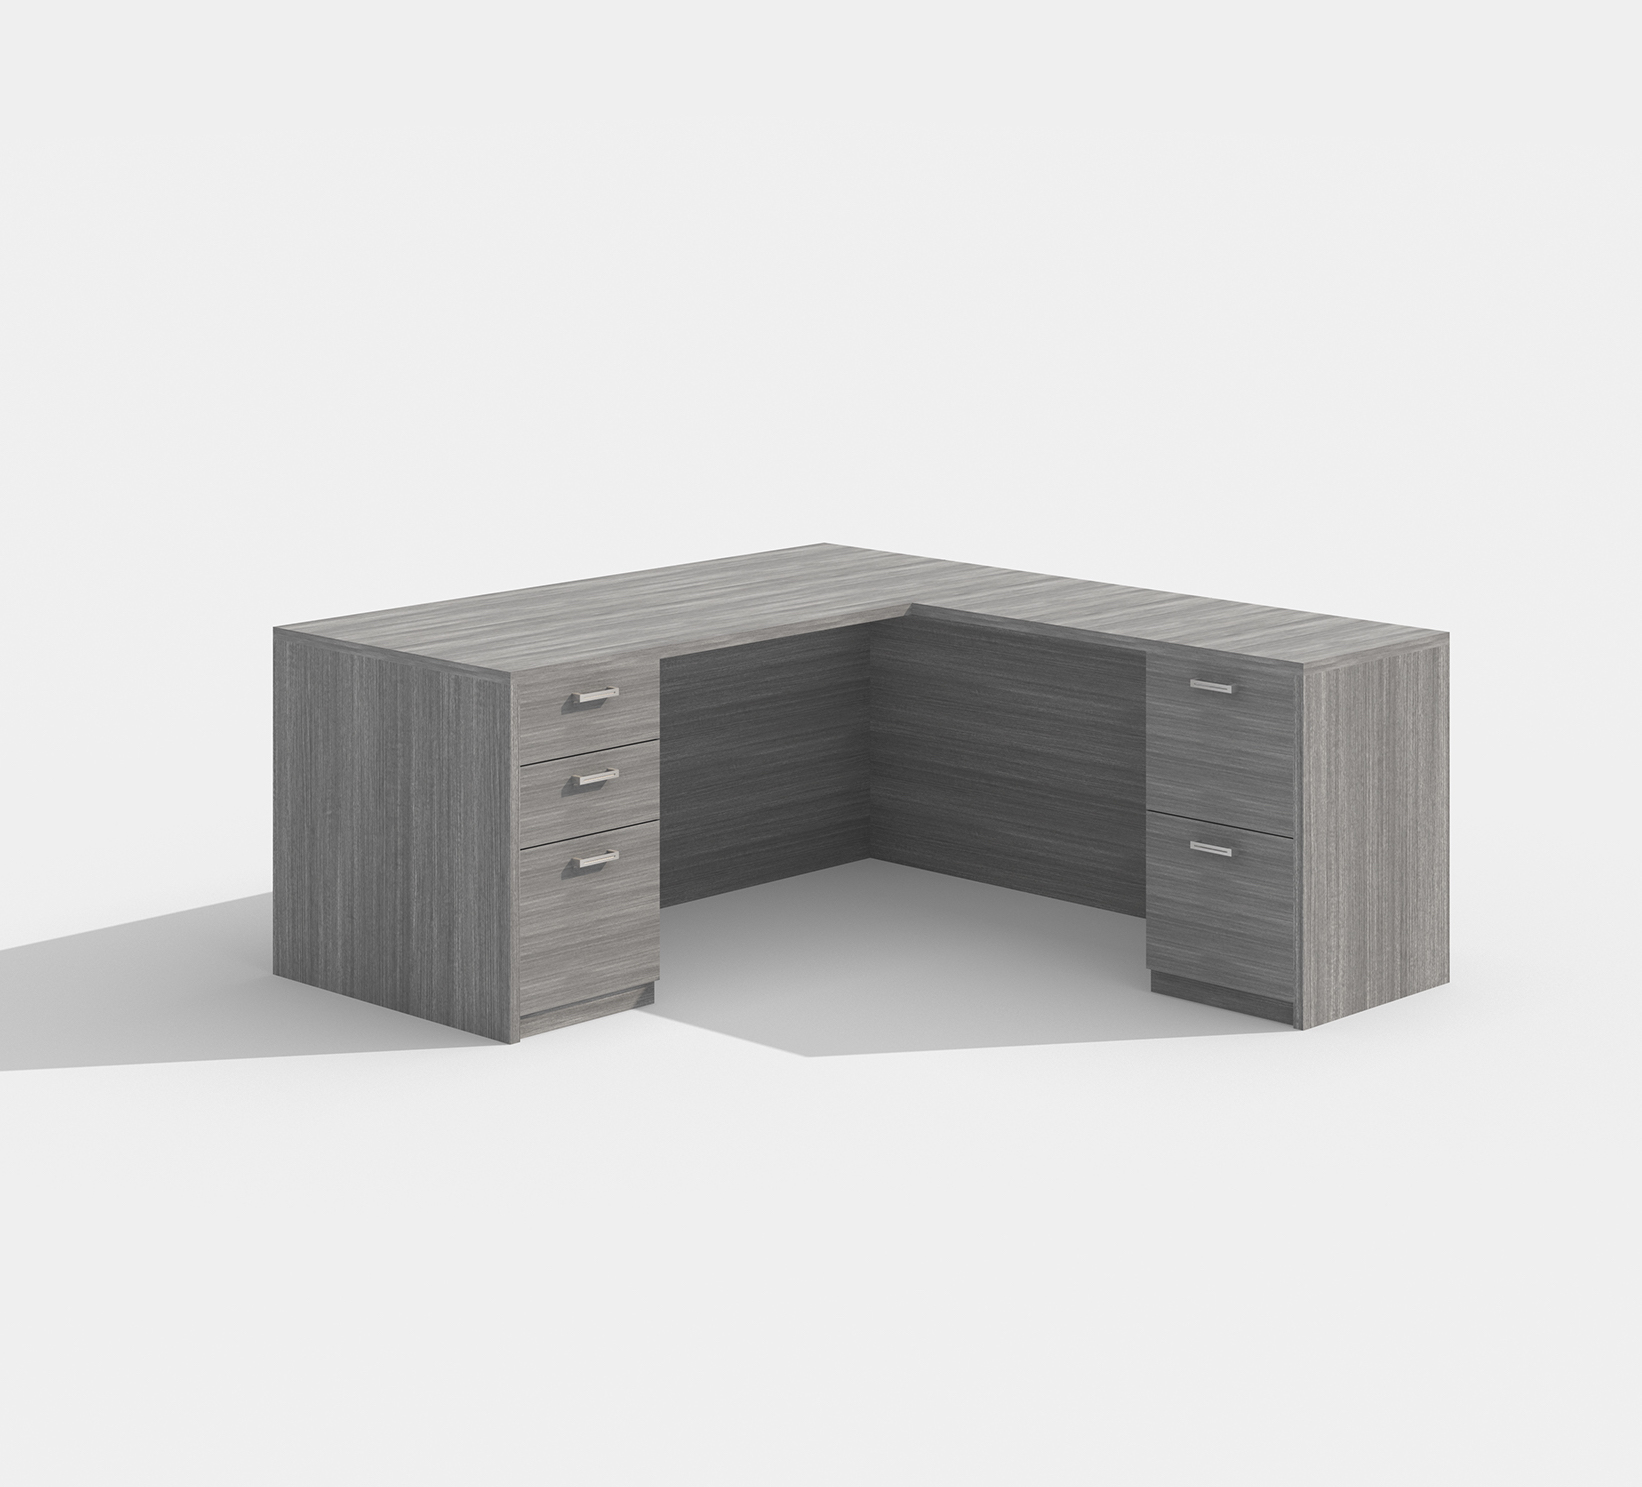 cherryman amber l-desk am-315n in gray